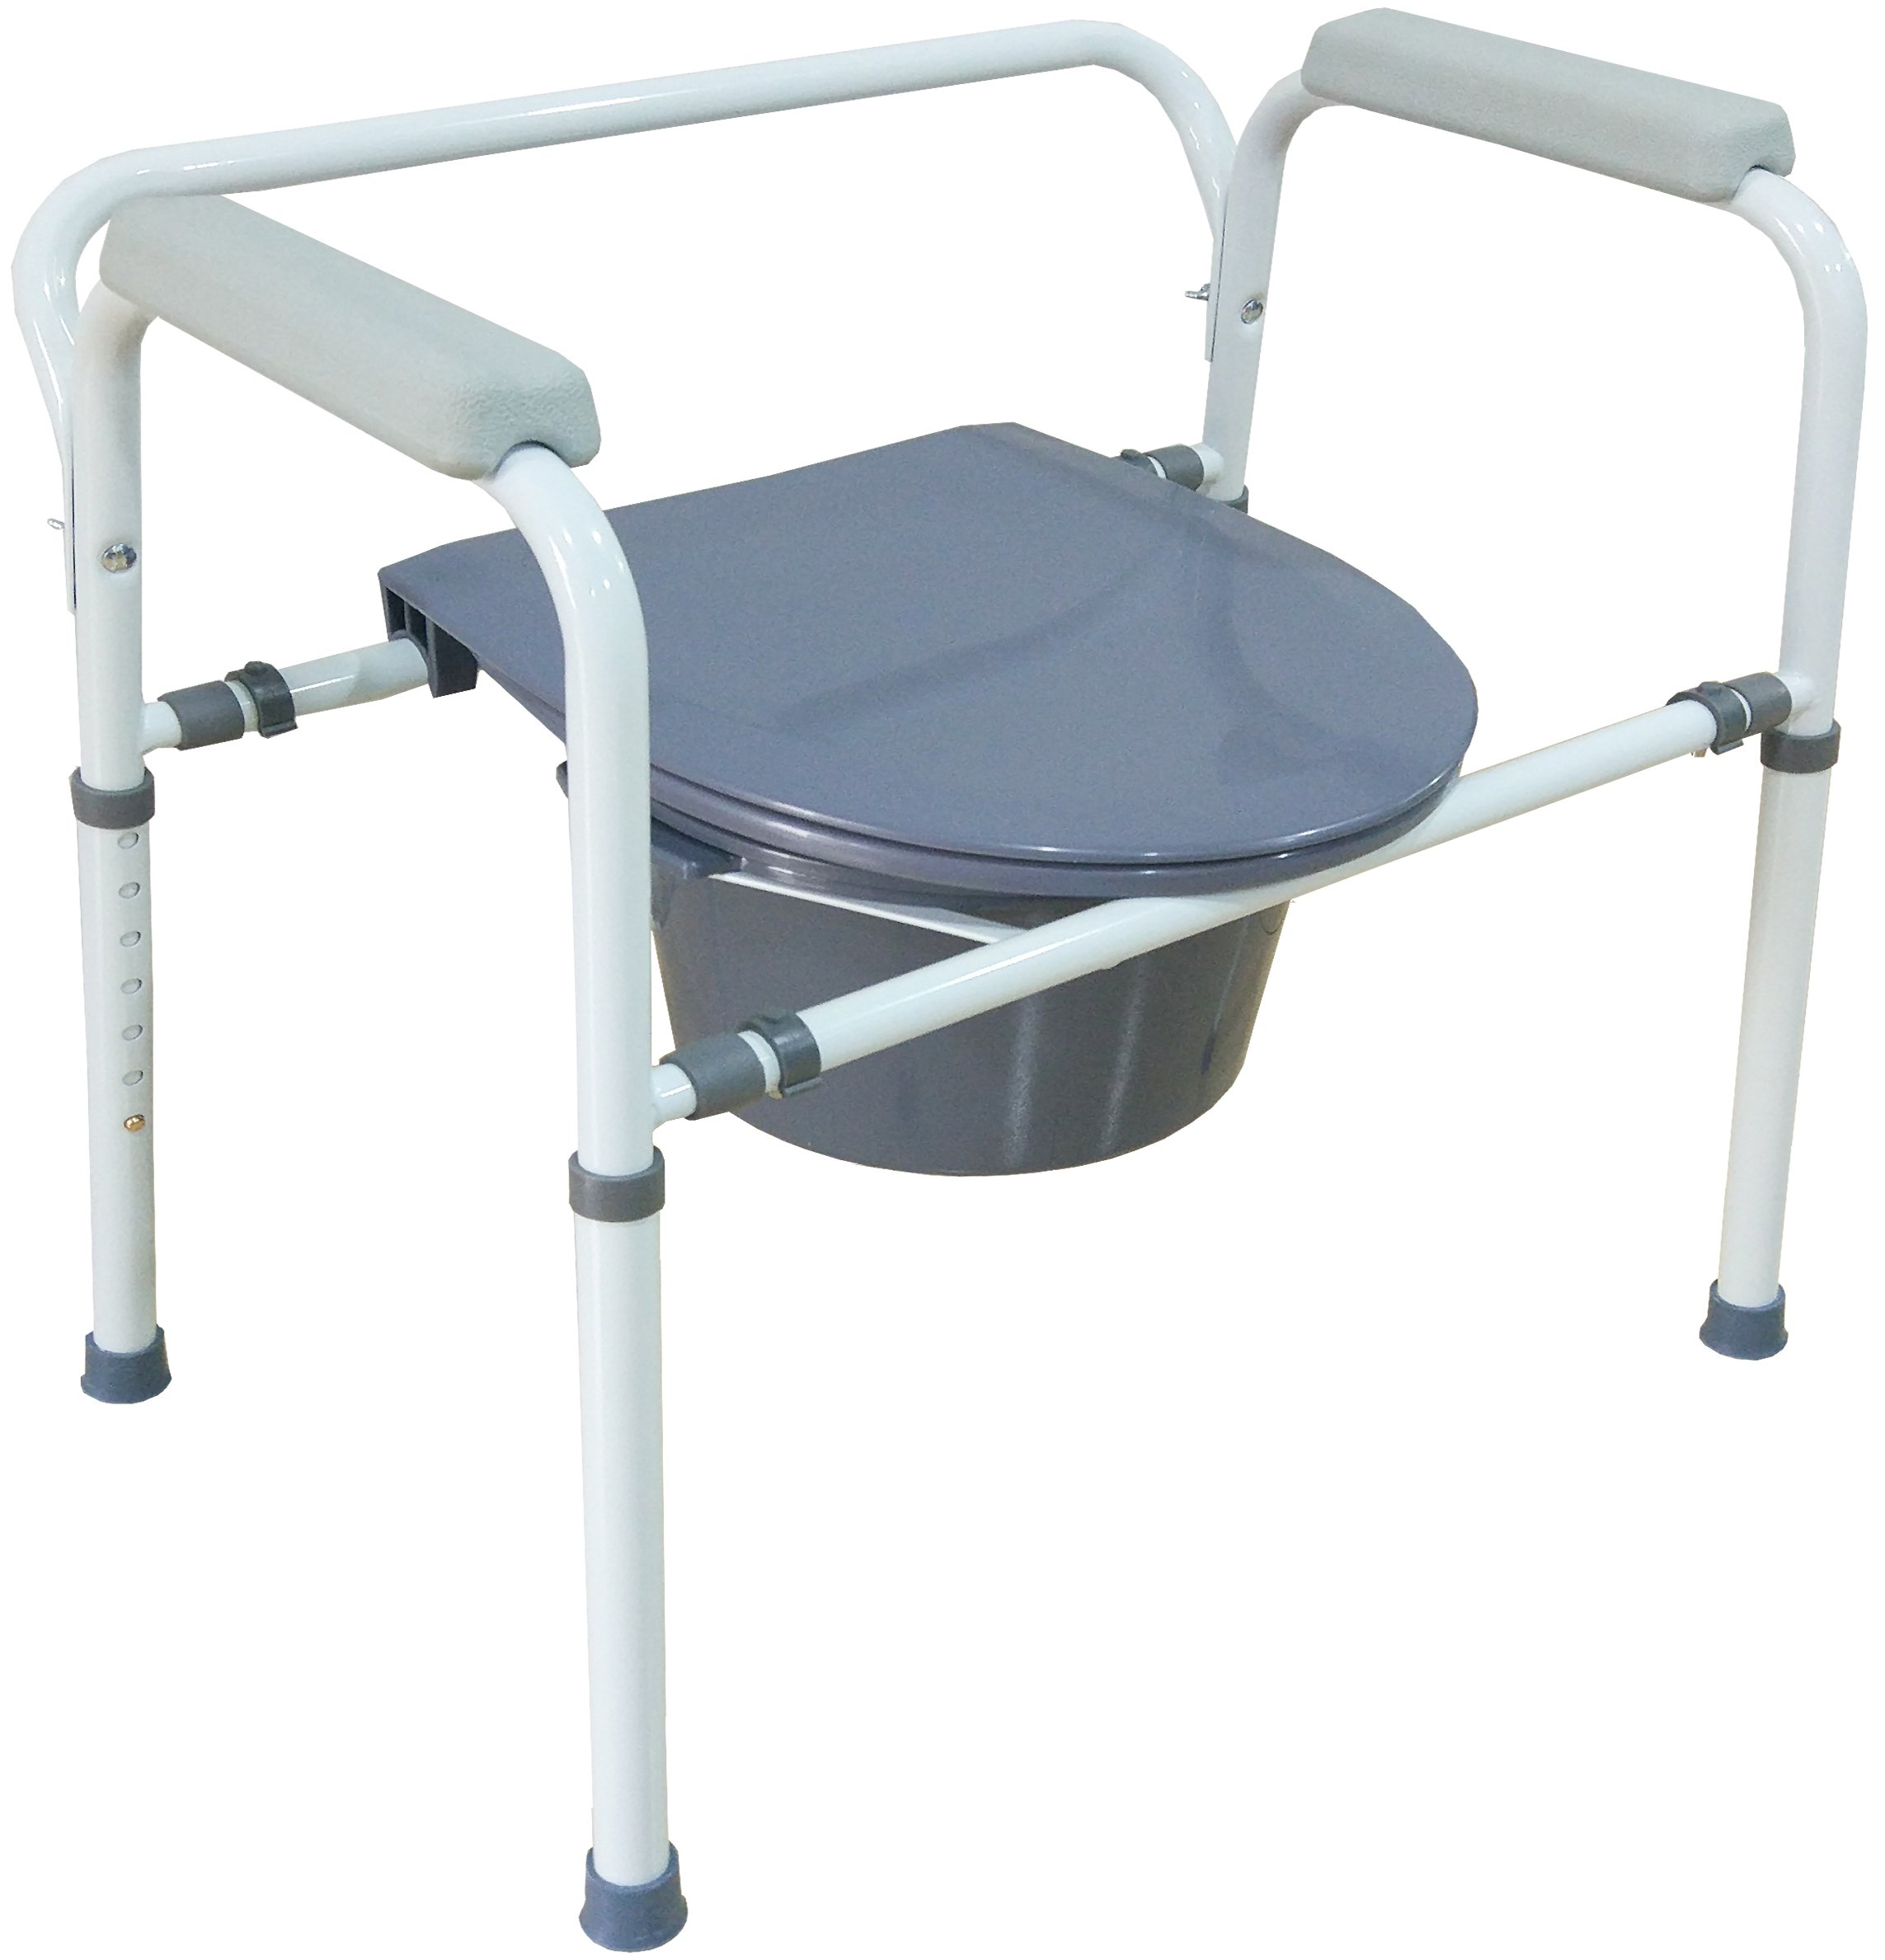 Medokare Bedside Commode Chair - Heavy-Duty Steel Commode Seat, Bedside Potty Chair for Adults, Medical Handicap Toilet Seat with Handles and Bucket by Medokare (Image #3)